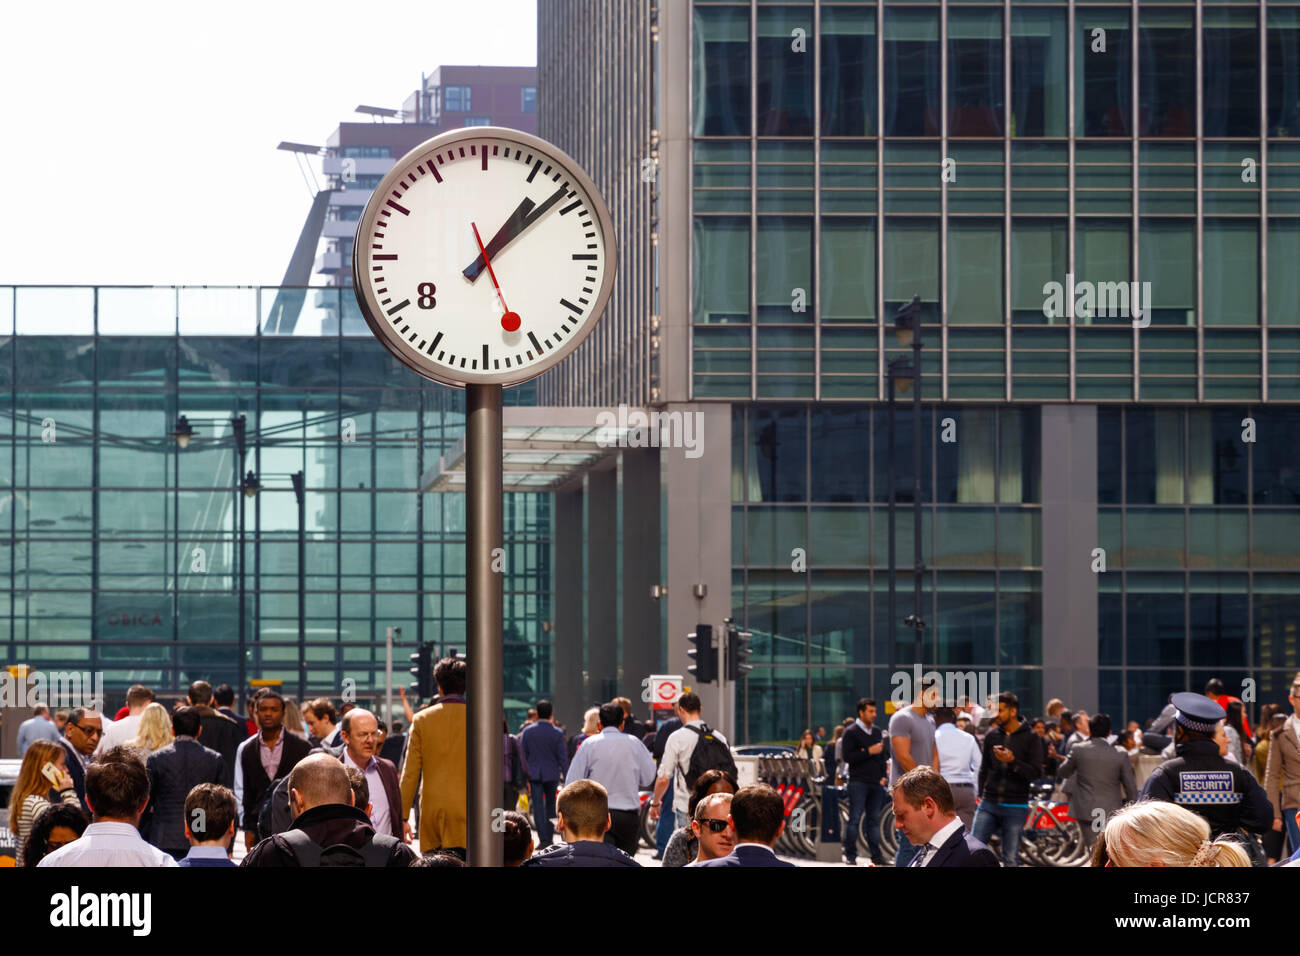 London, UK - May 10, 2017 - A public clock in Reuters Plaza, Canary Wharf packed with people walking through Stock Photo